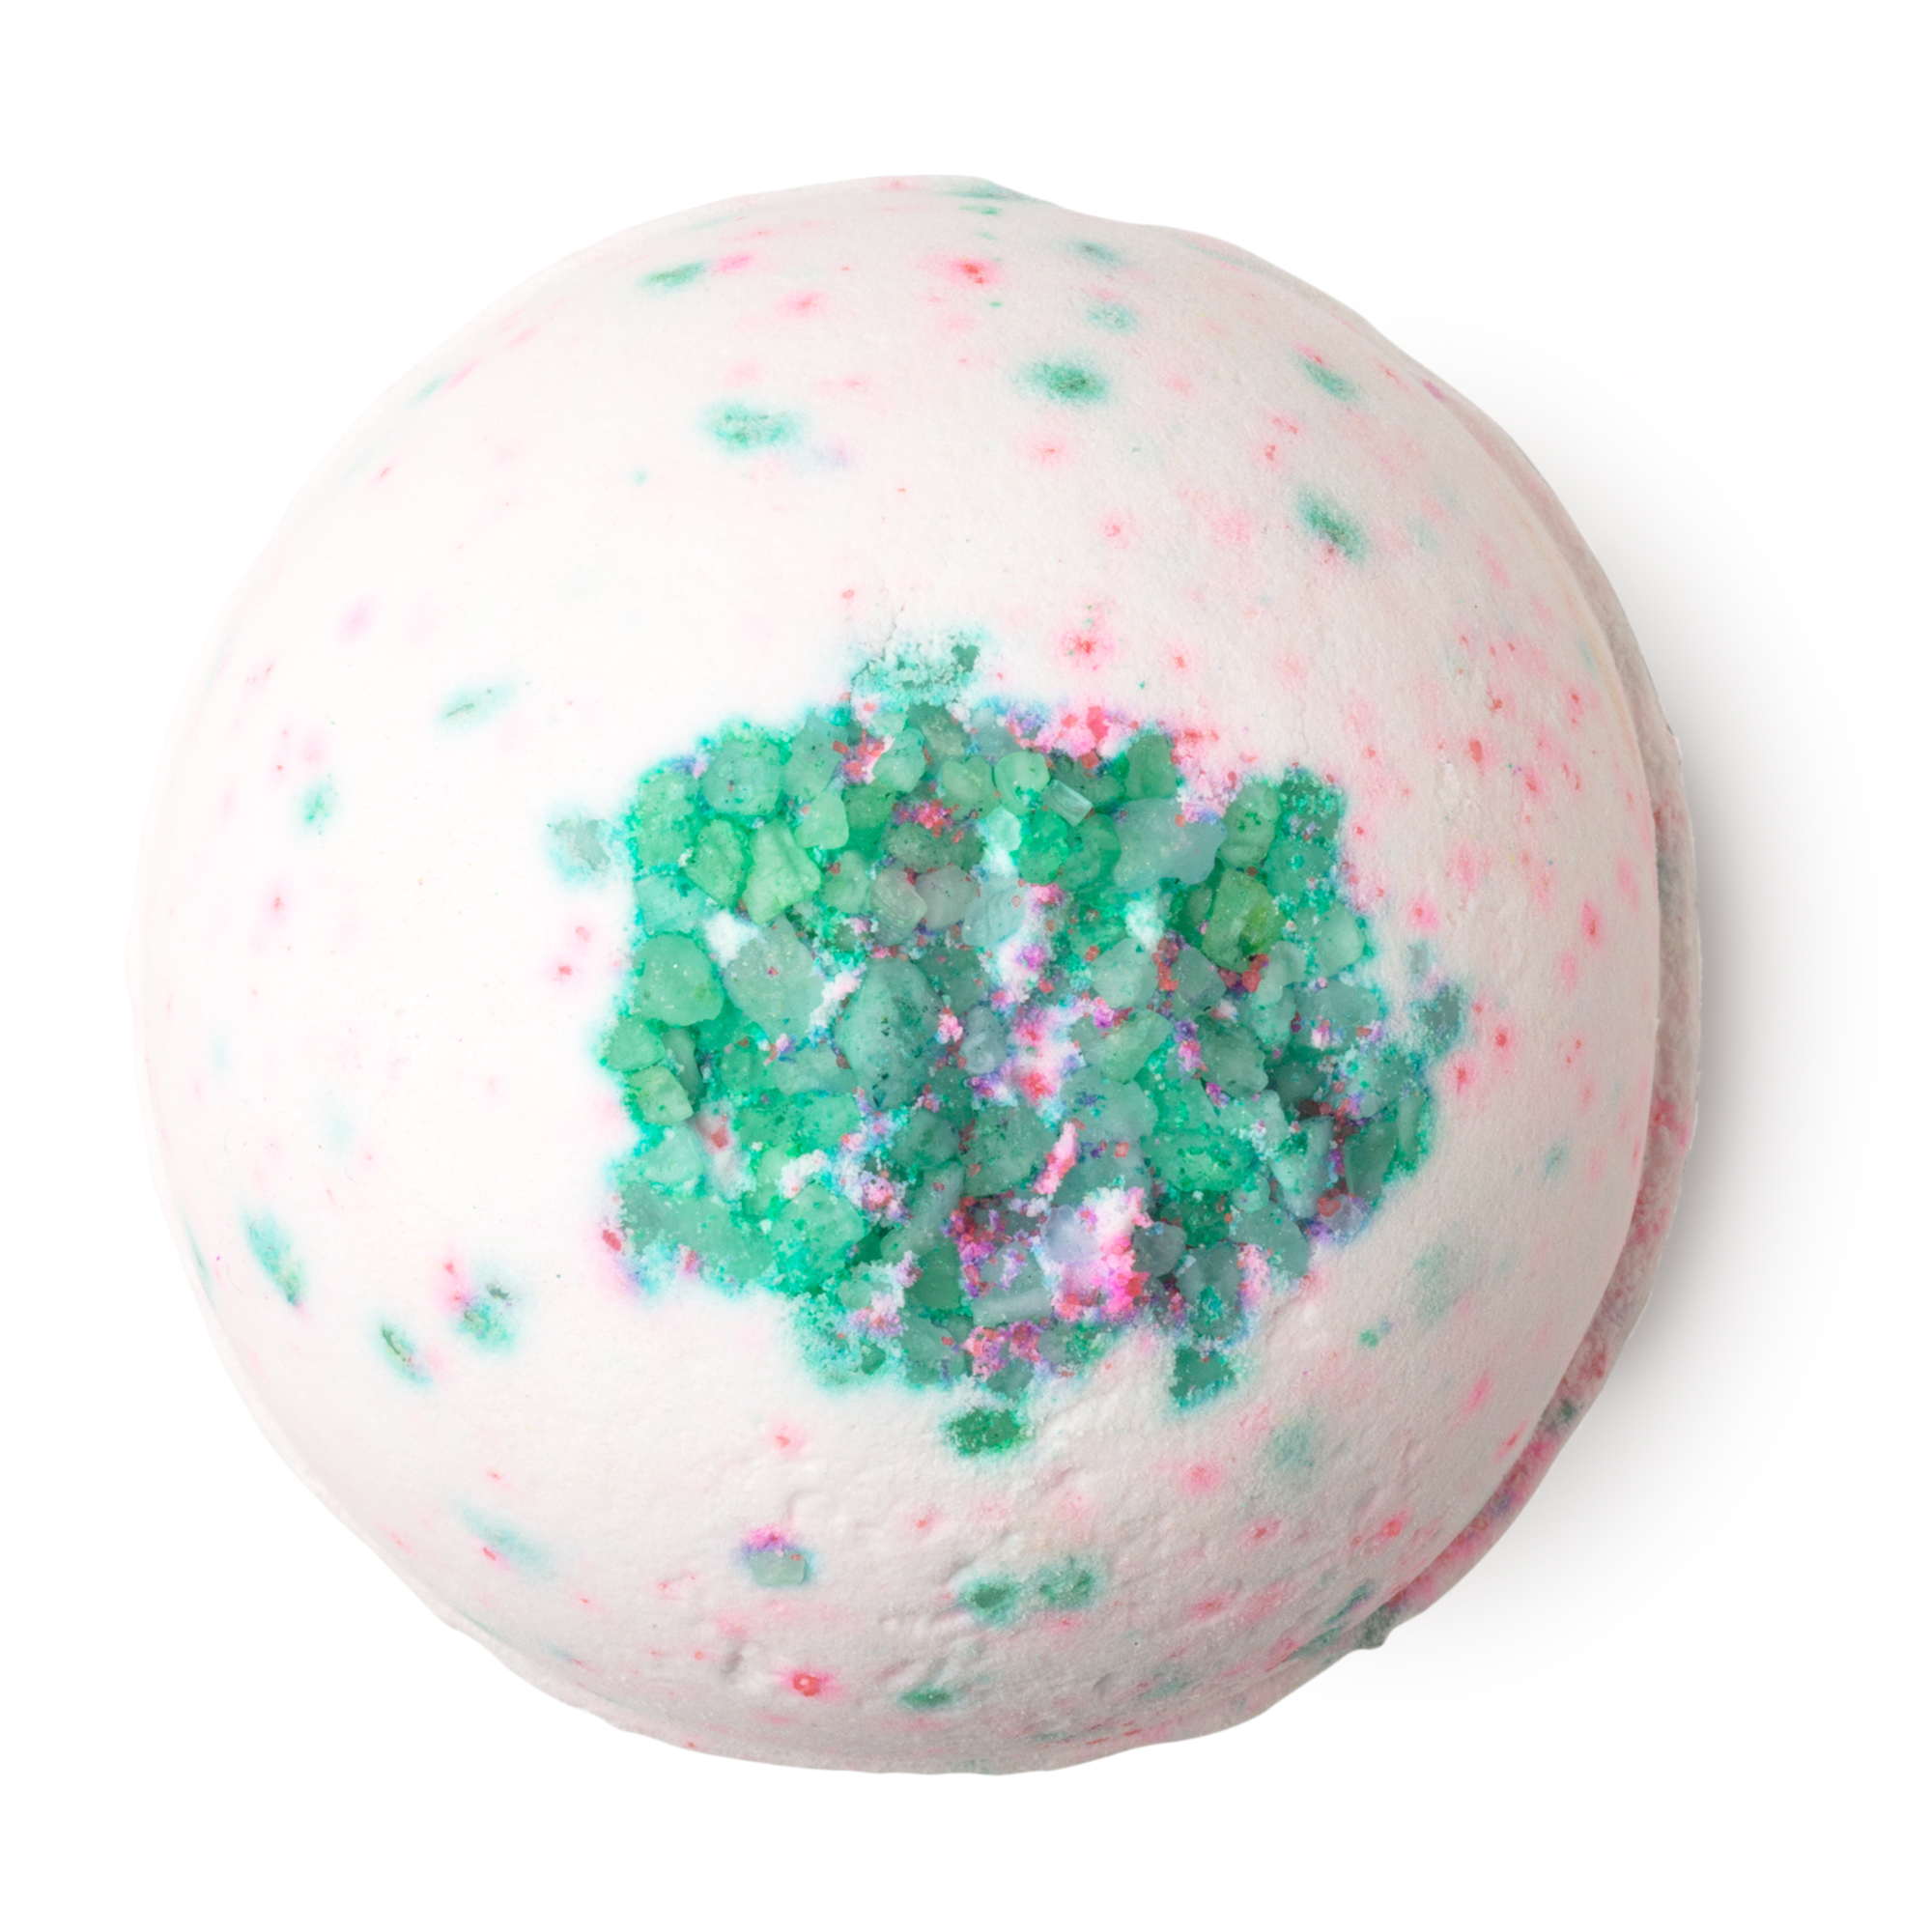 Sakura Bath Bombs Lush Fresh Handmade Cosmetics UK